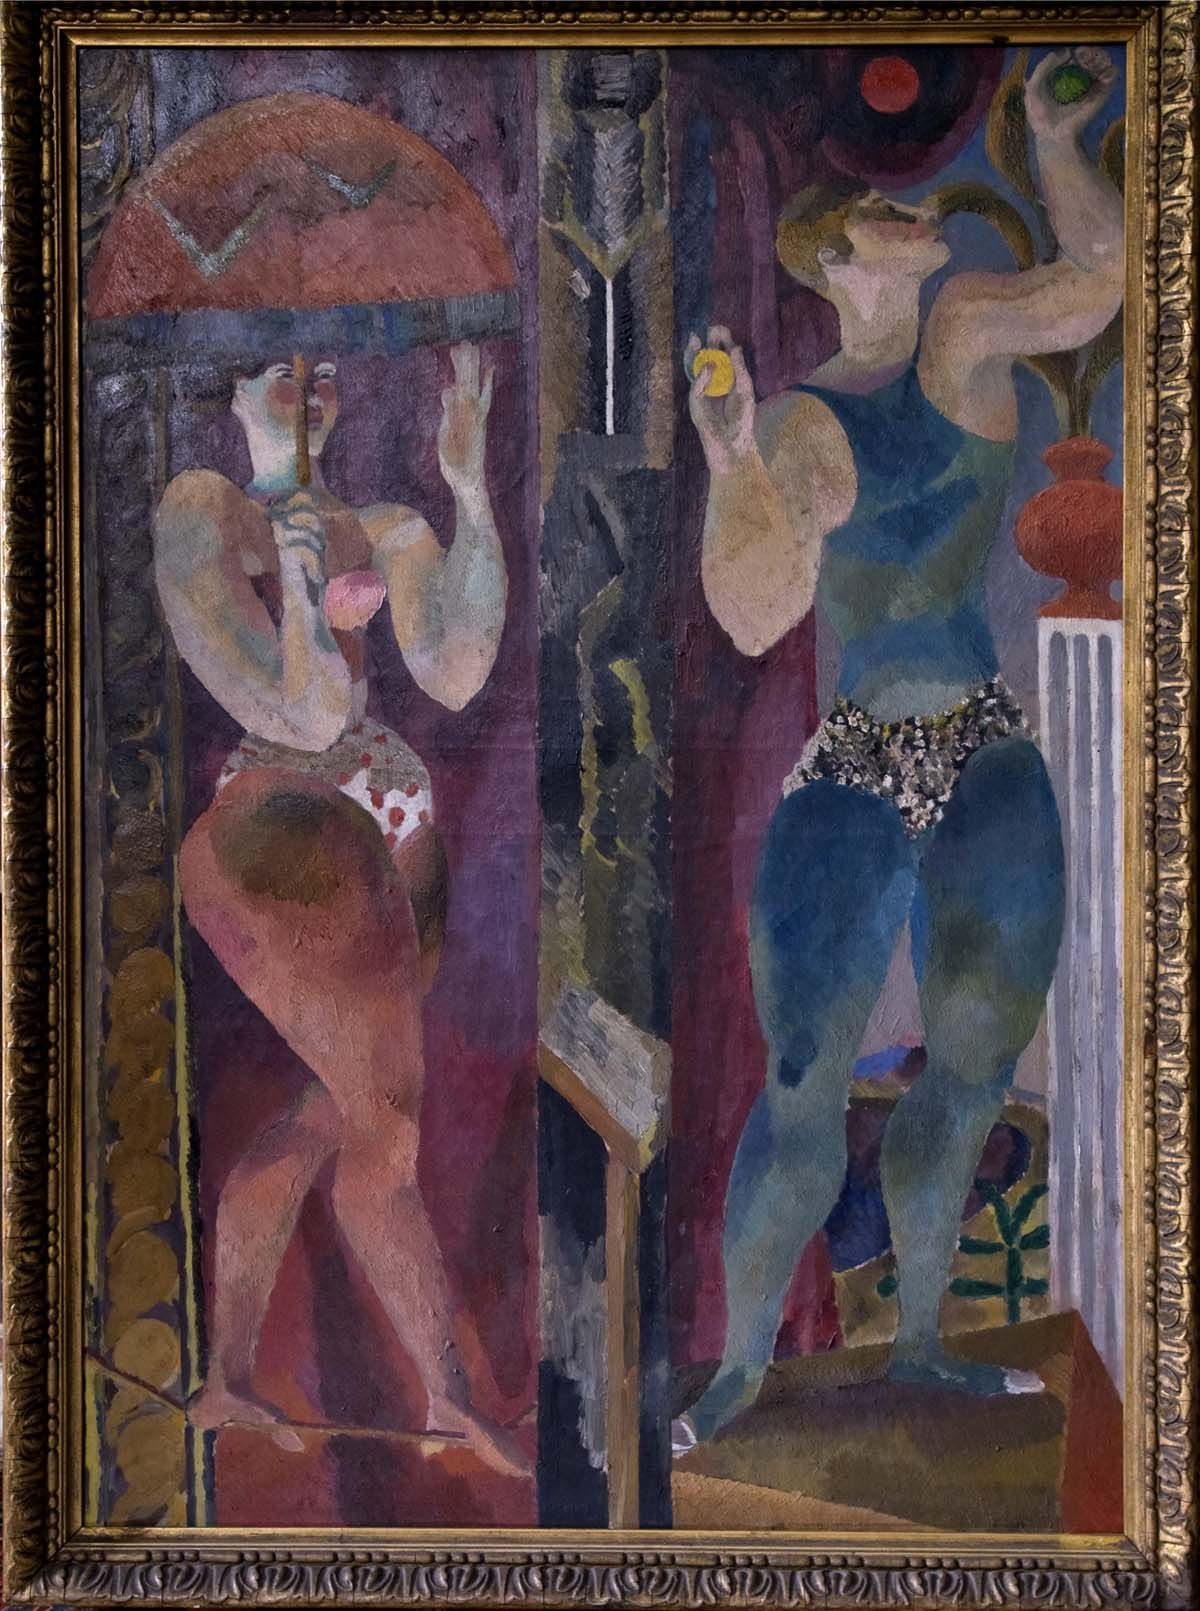 oil painting of two jugglers in leotards